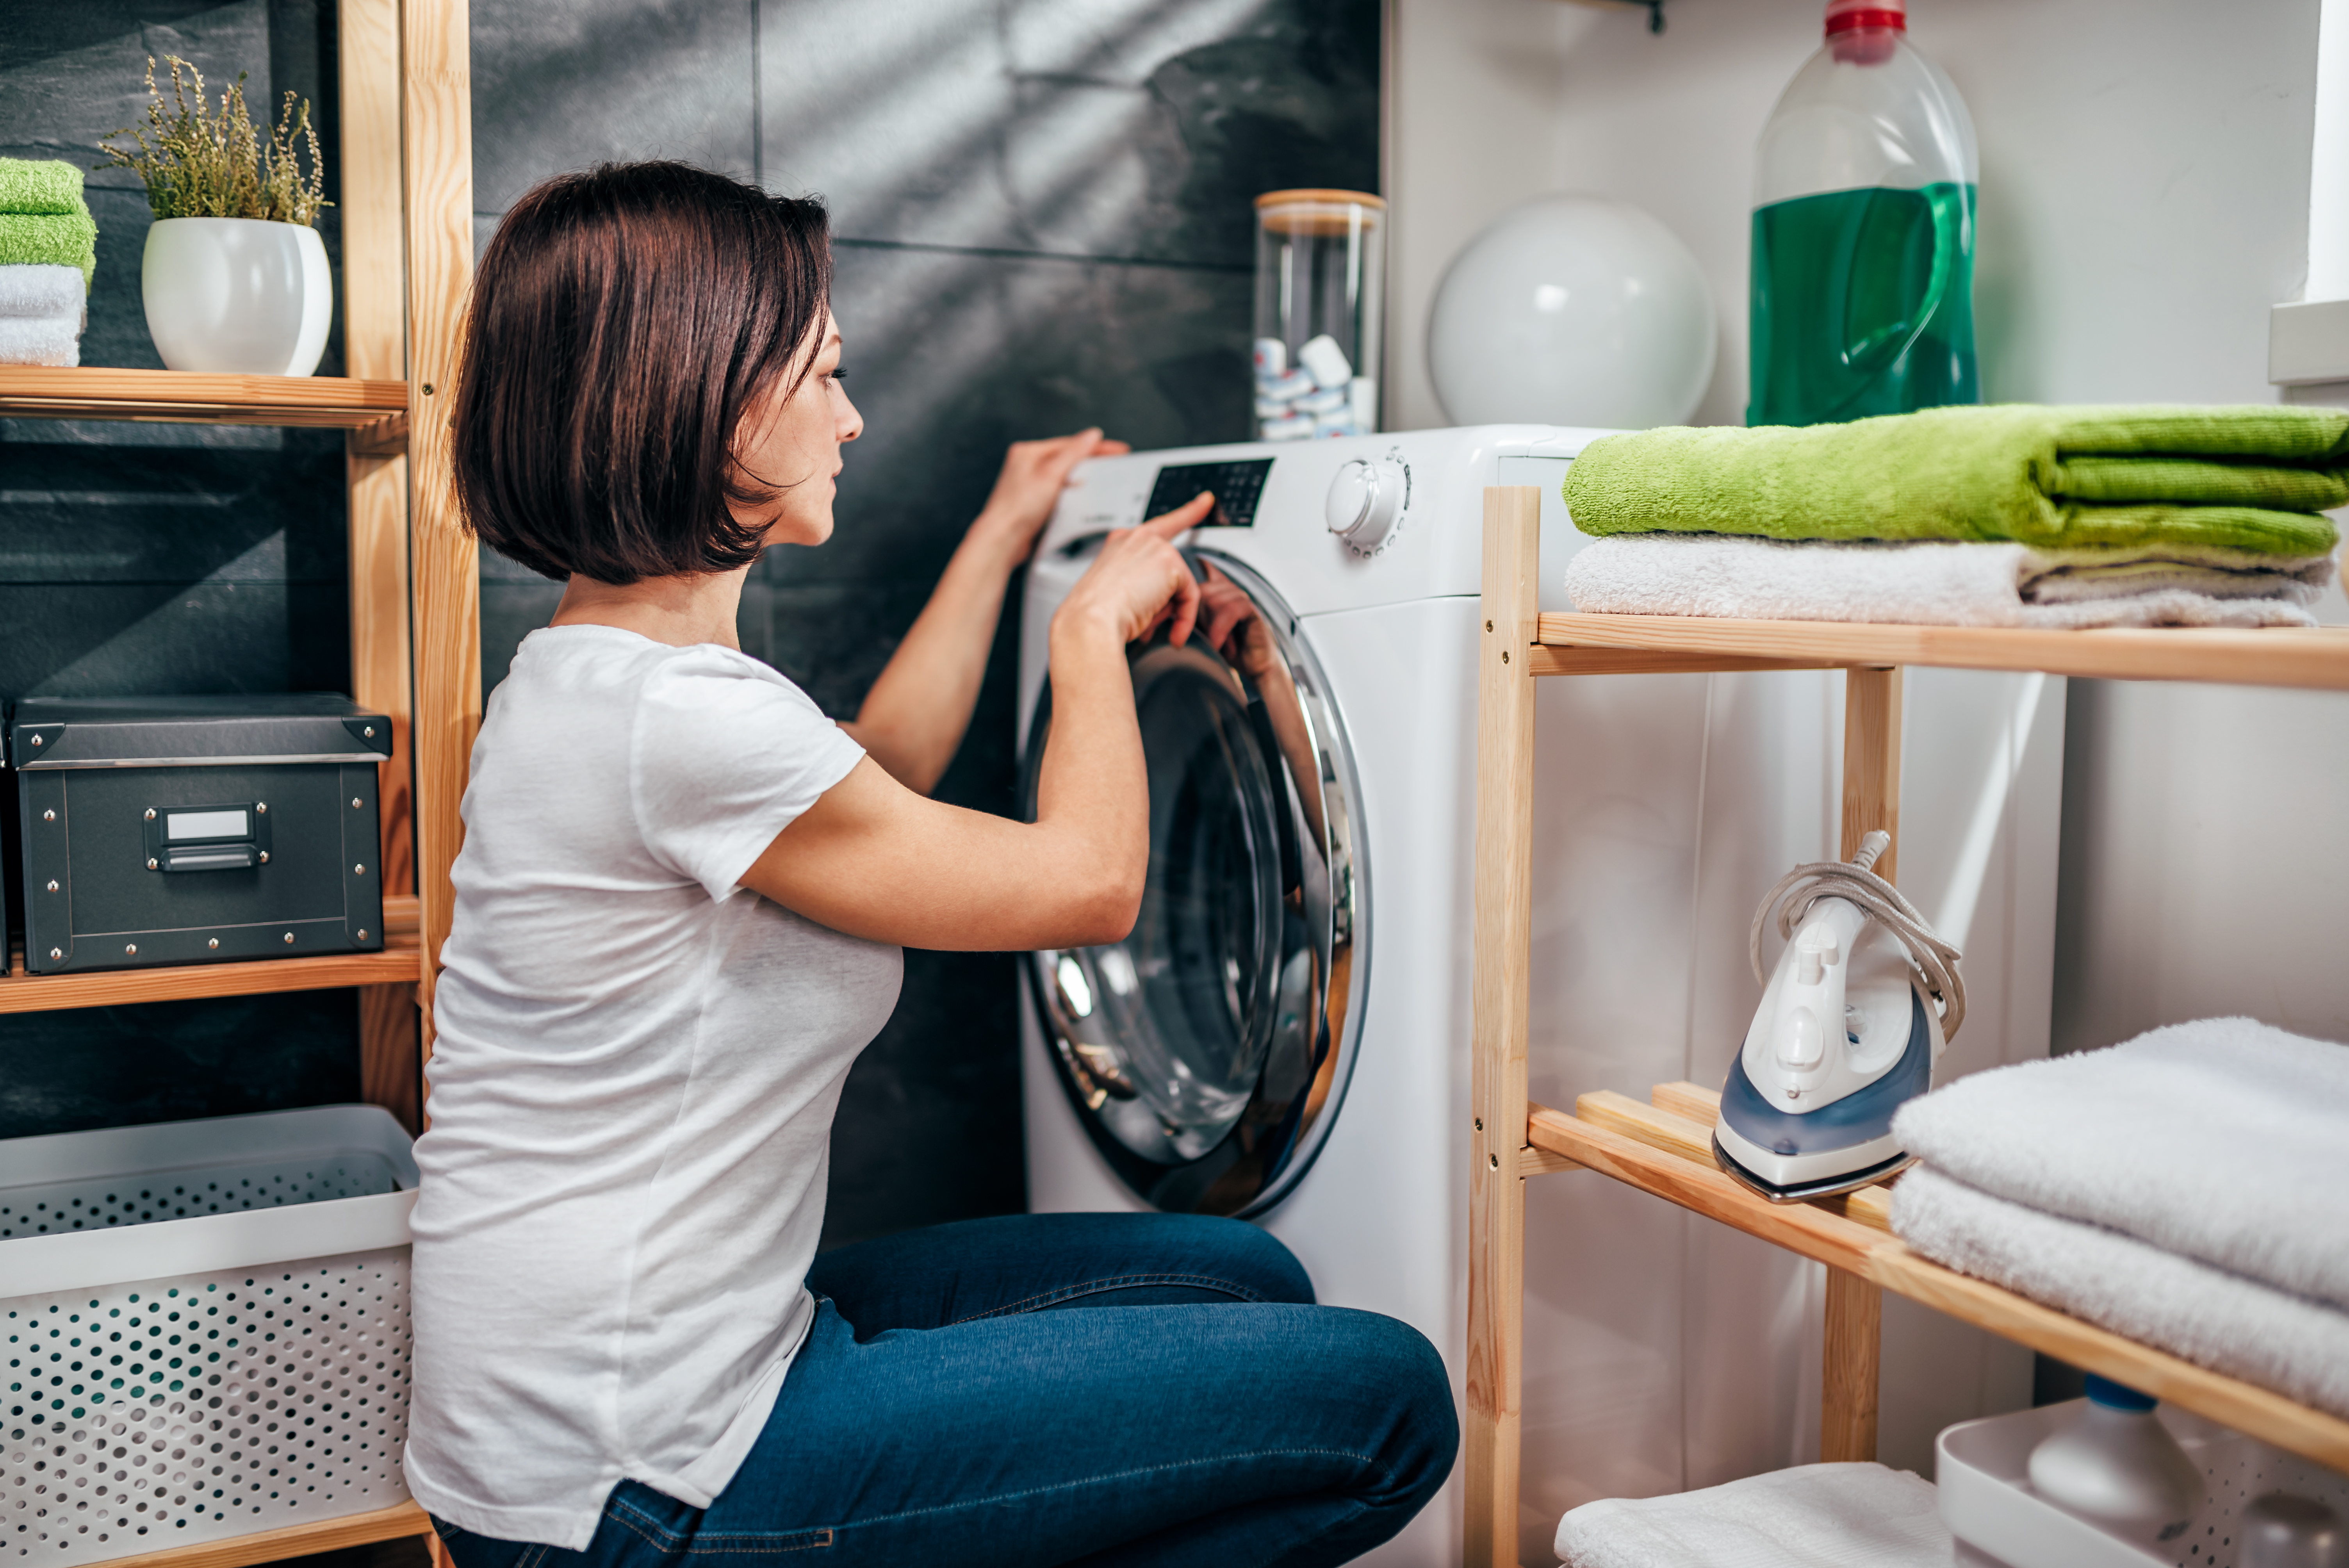 LG Washing Machine Error Codes | Home Guides | SF Gate